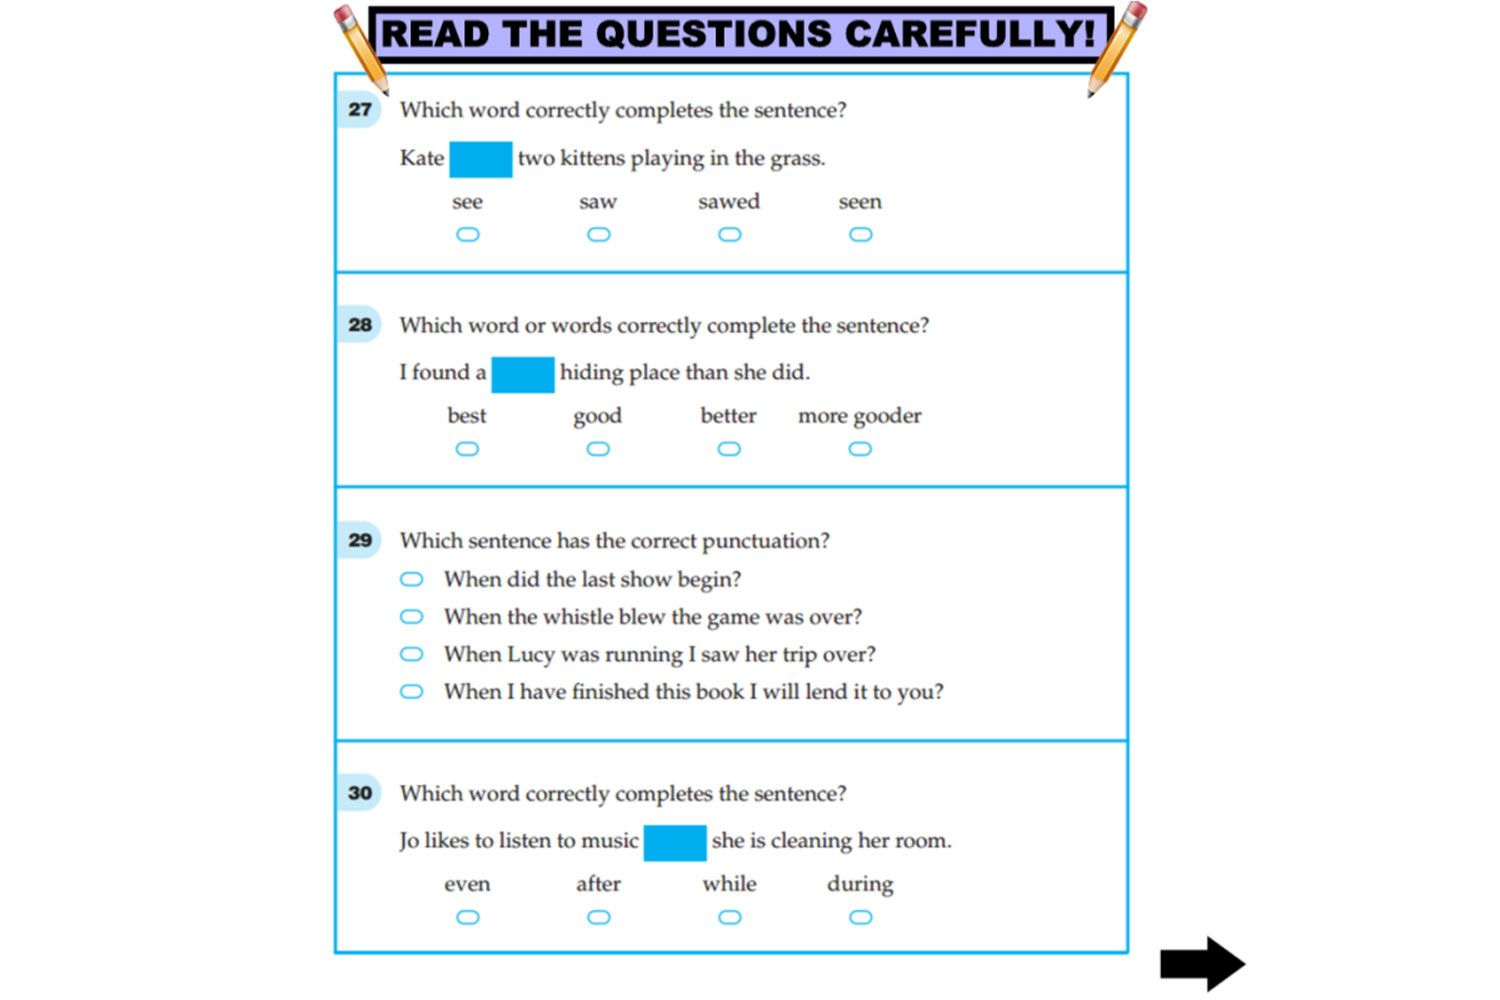 Year 3 Napaln Language Conventions Practice Questions For Iwb Interactivelessons